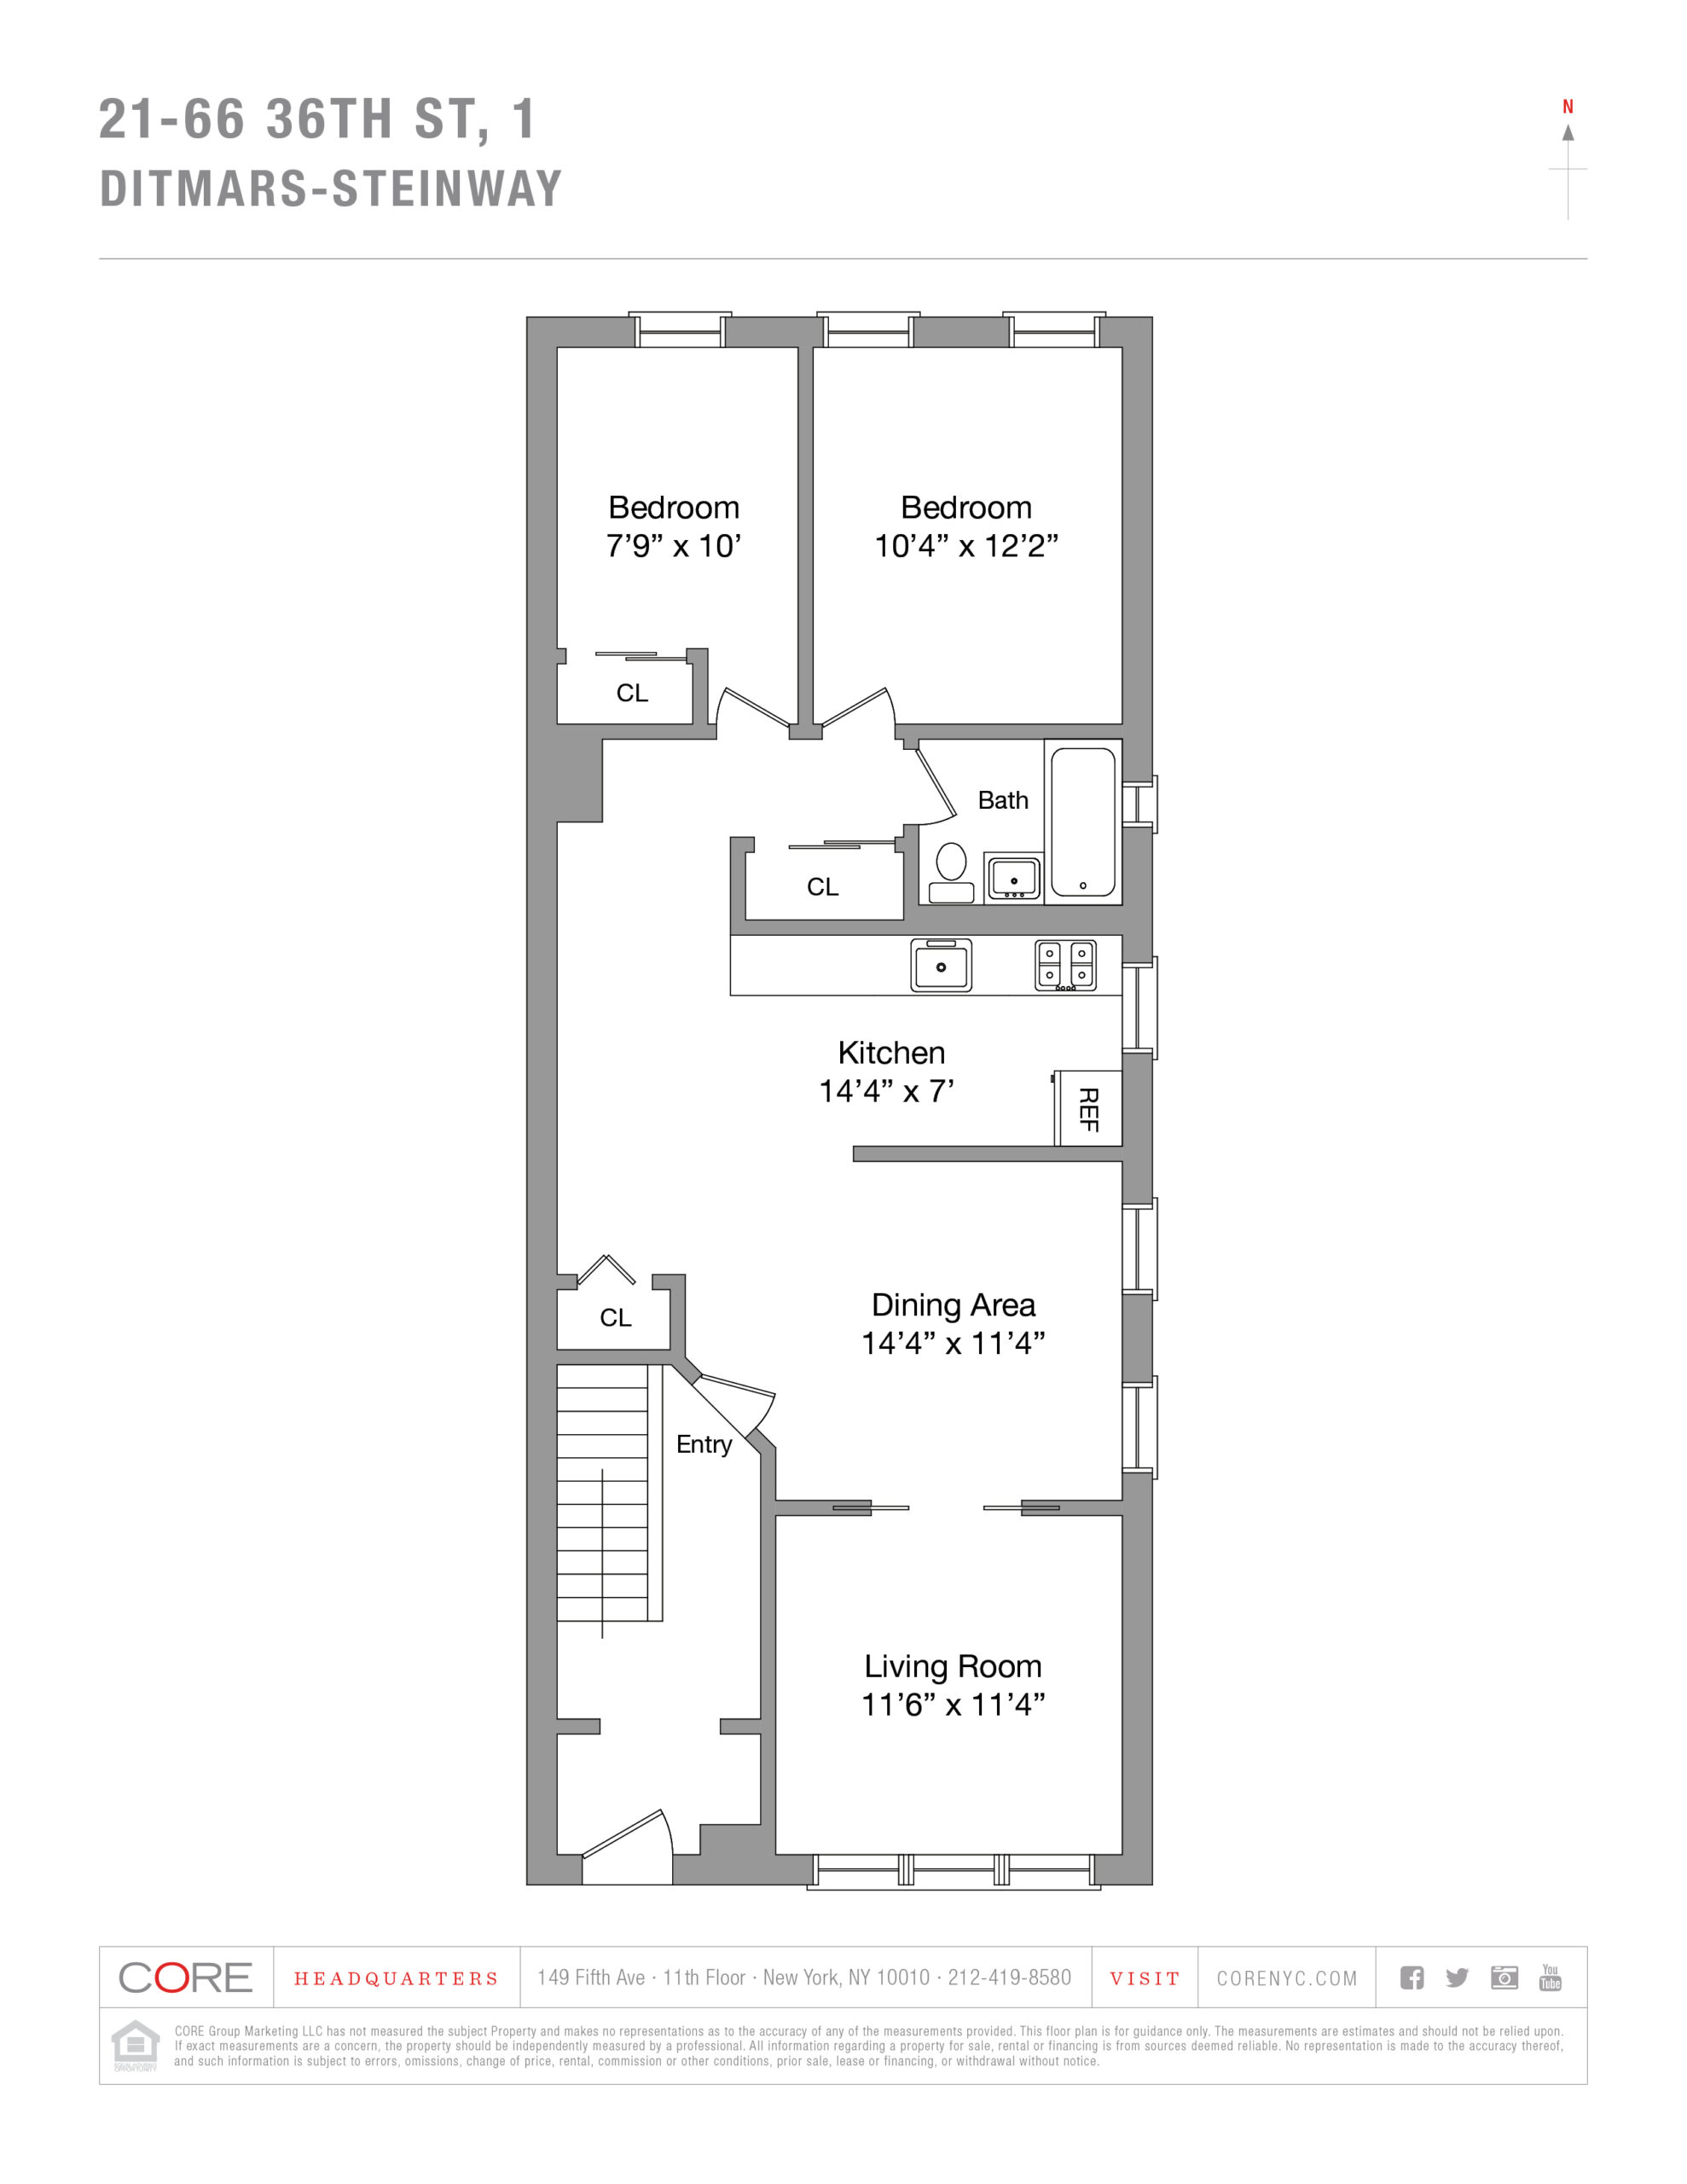 21-66 36 St. 1, Queens, NY 11105